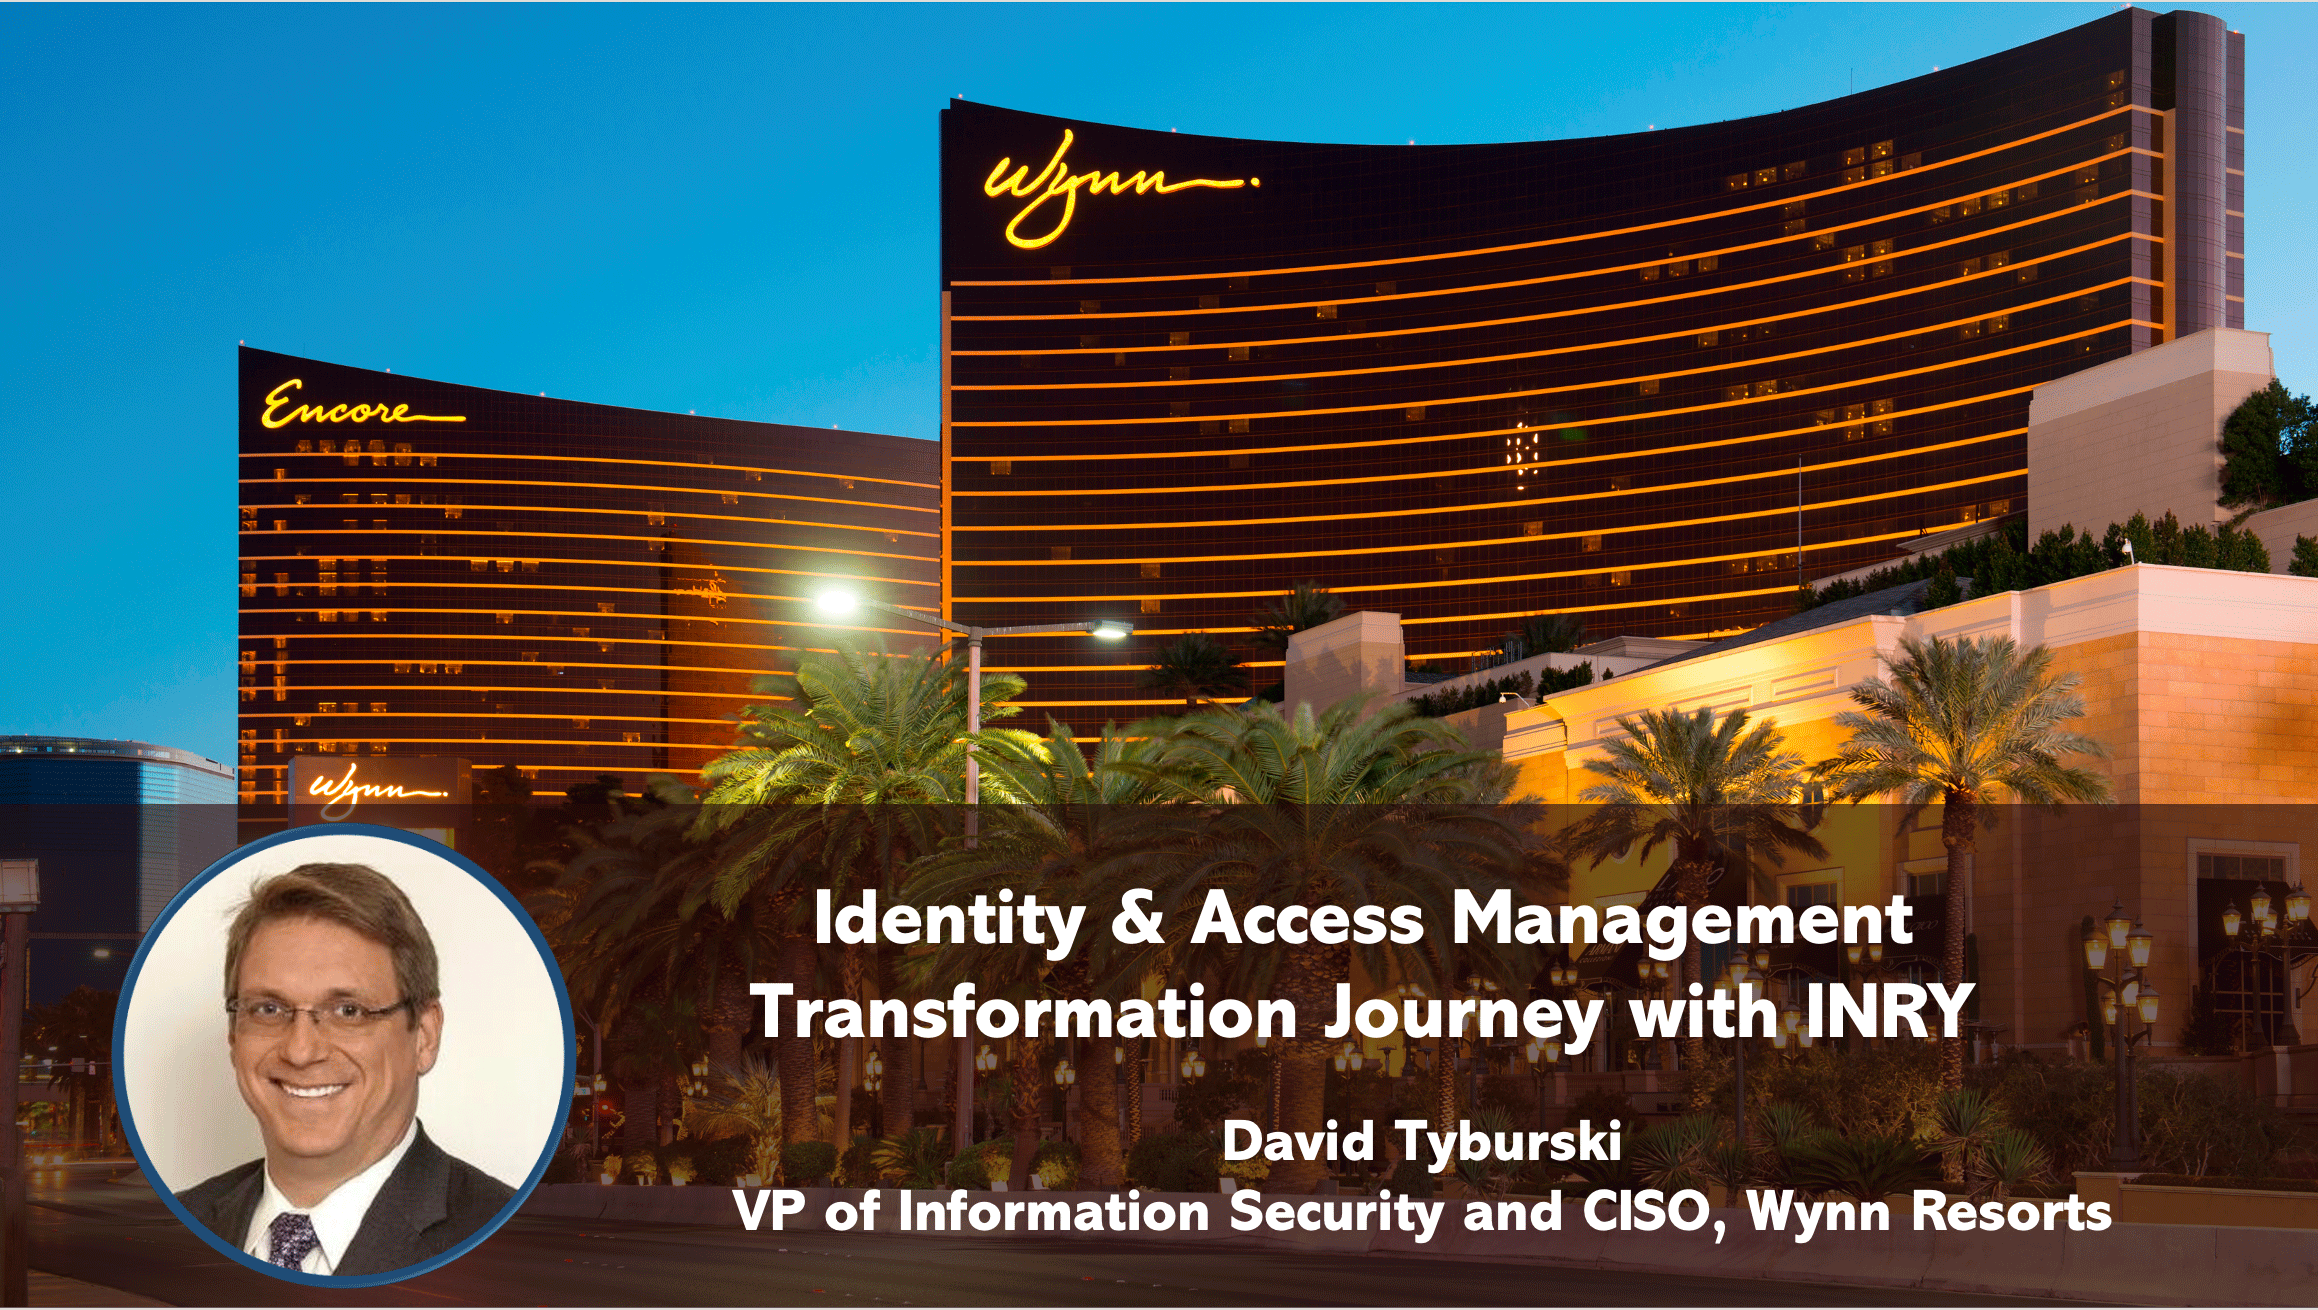 7001_wynn-resorts-identity-access-management-journey